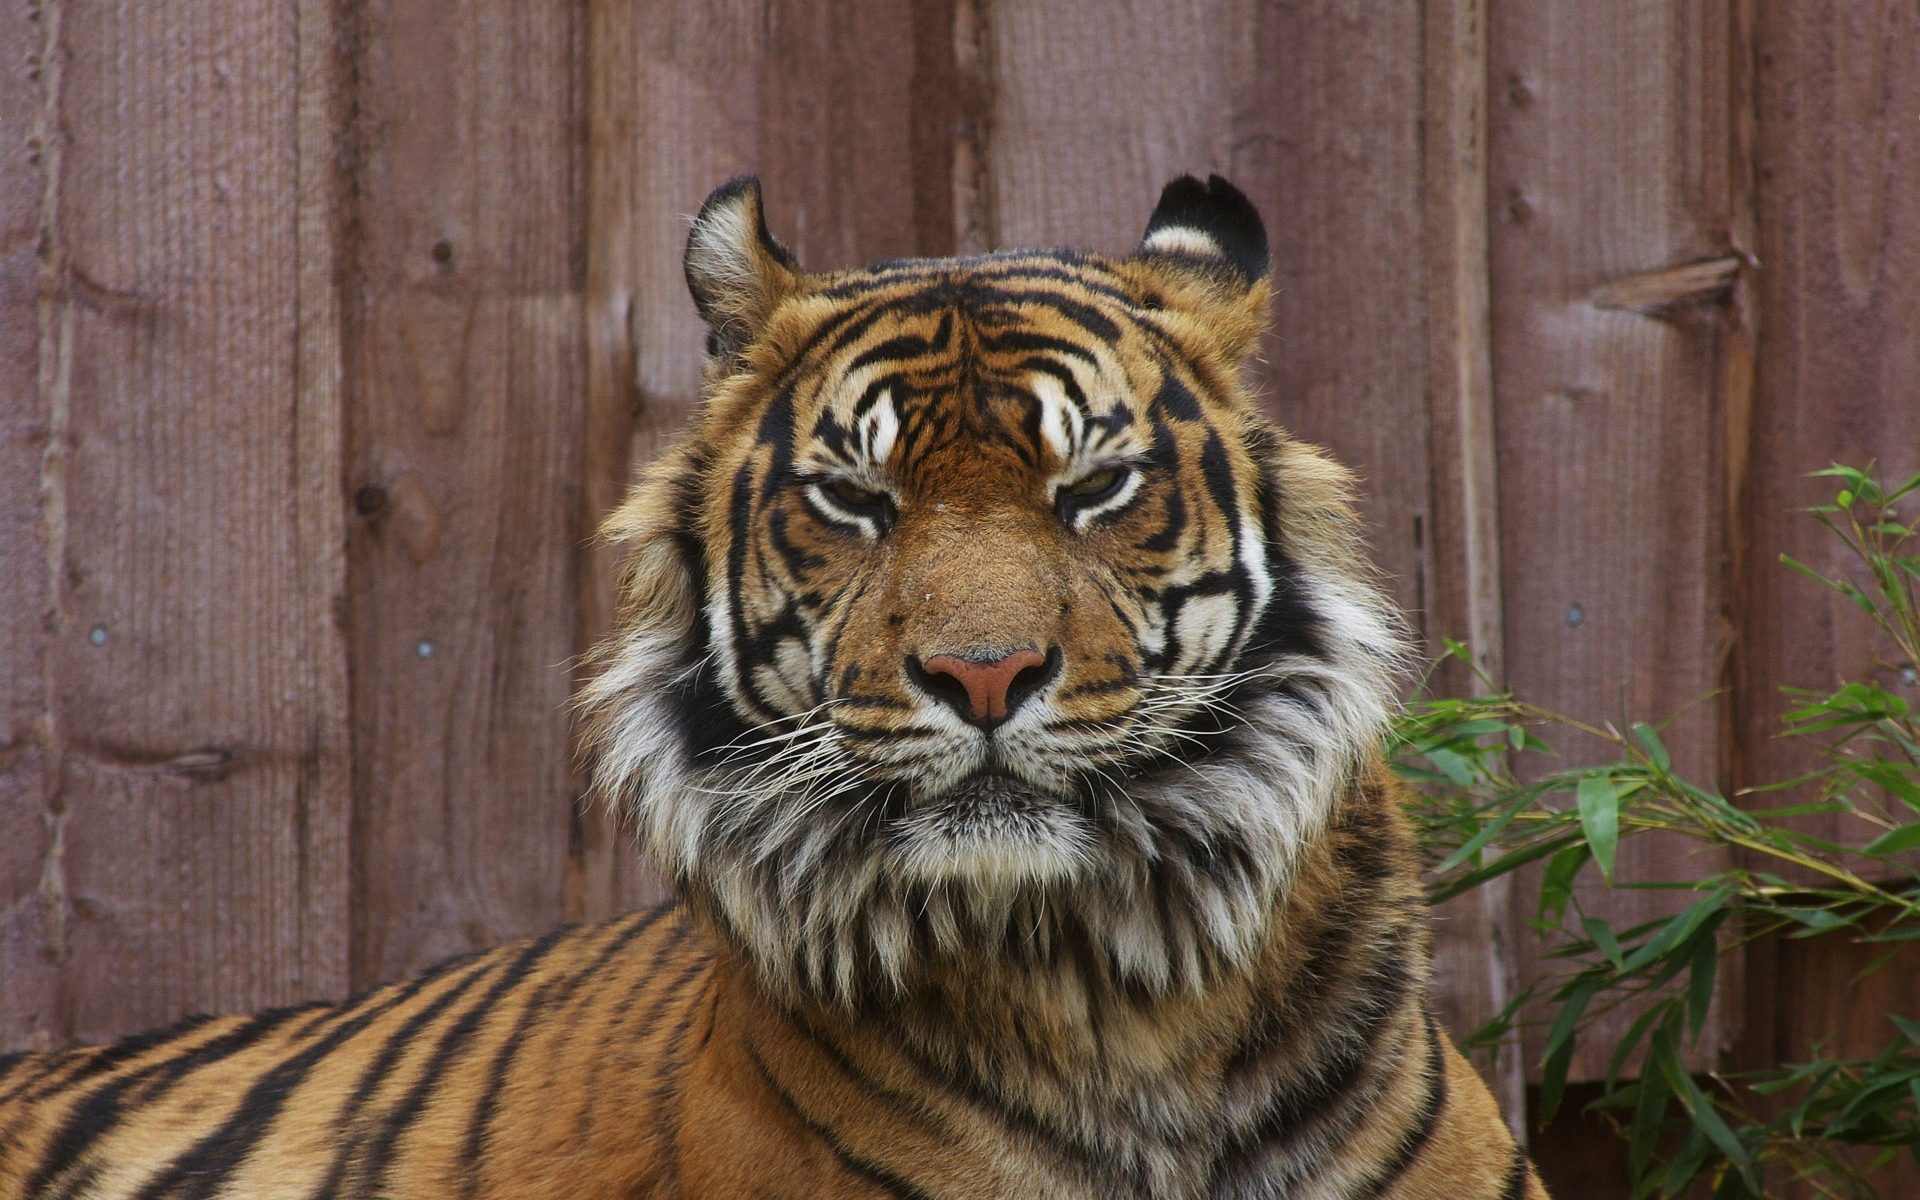 Tiger angry eyes